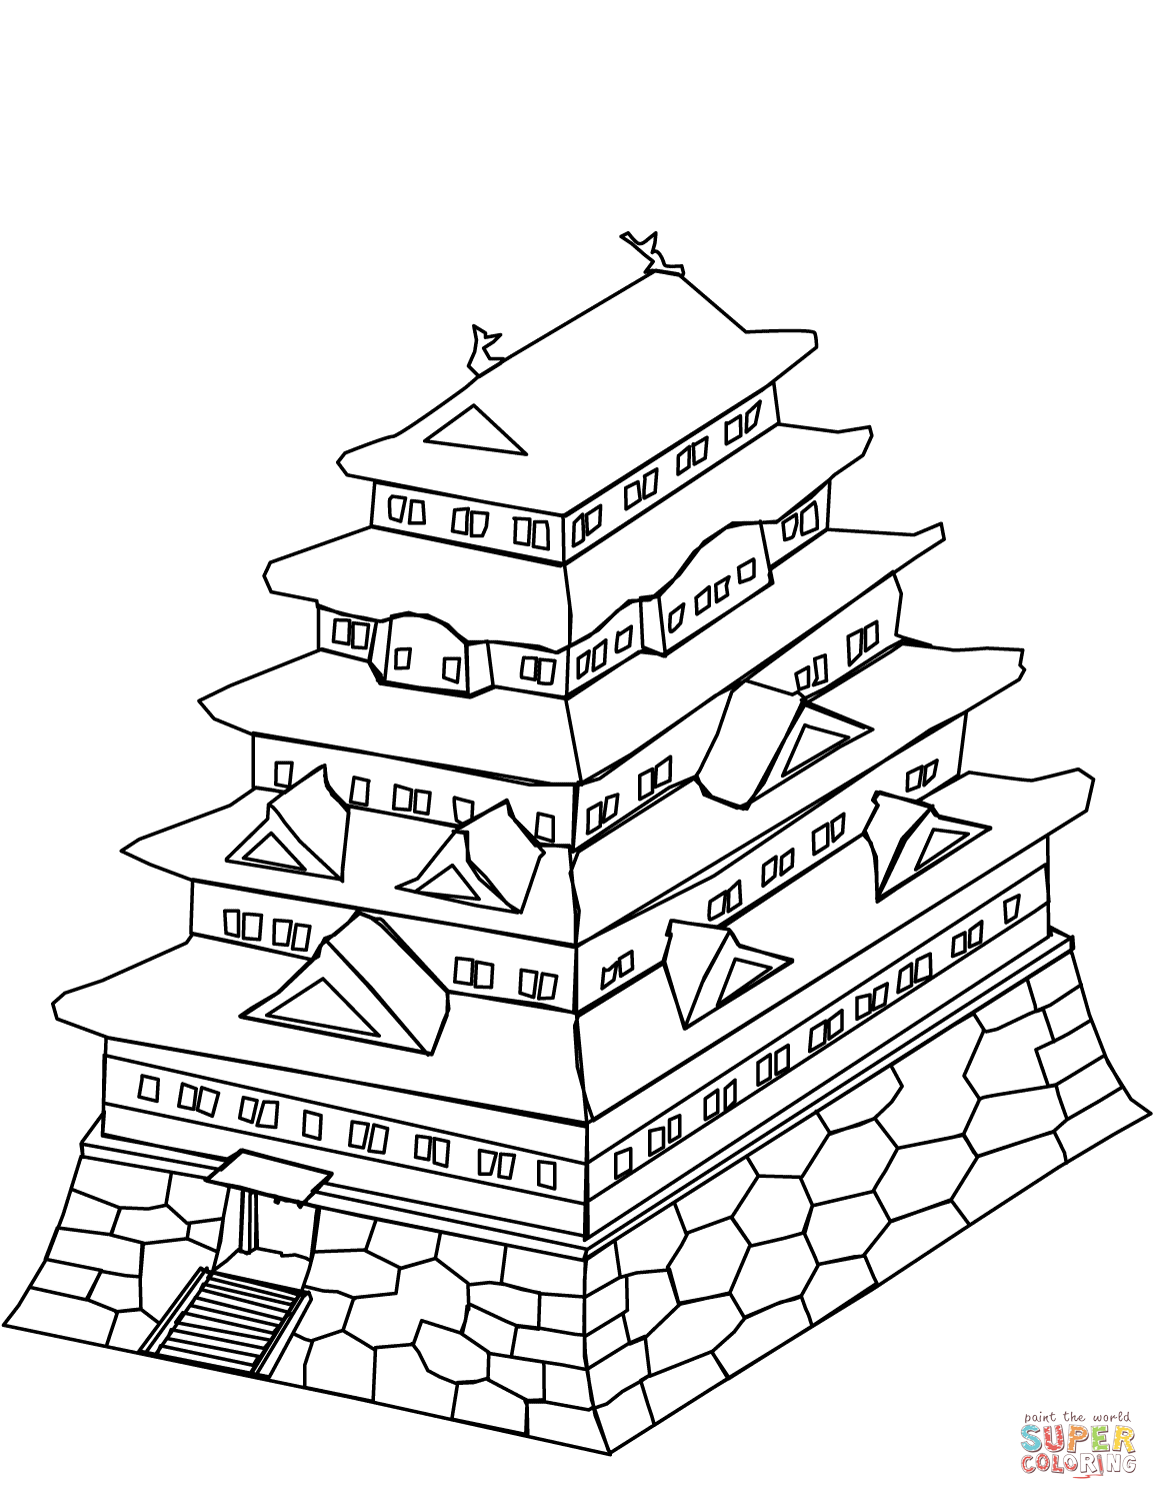 Japanese Building Drawing At Getdrawings